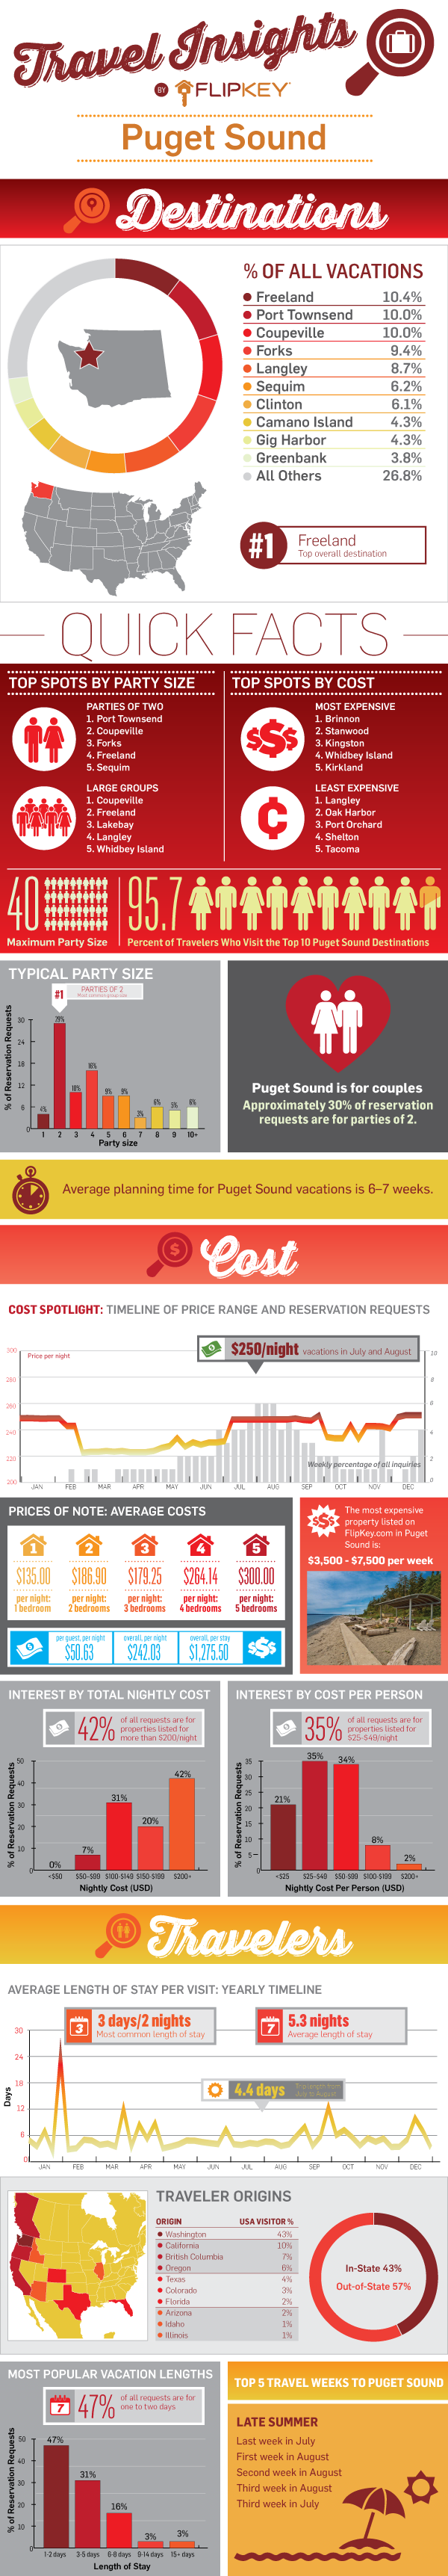 Puget Sound Travel Insights Infographic